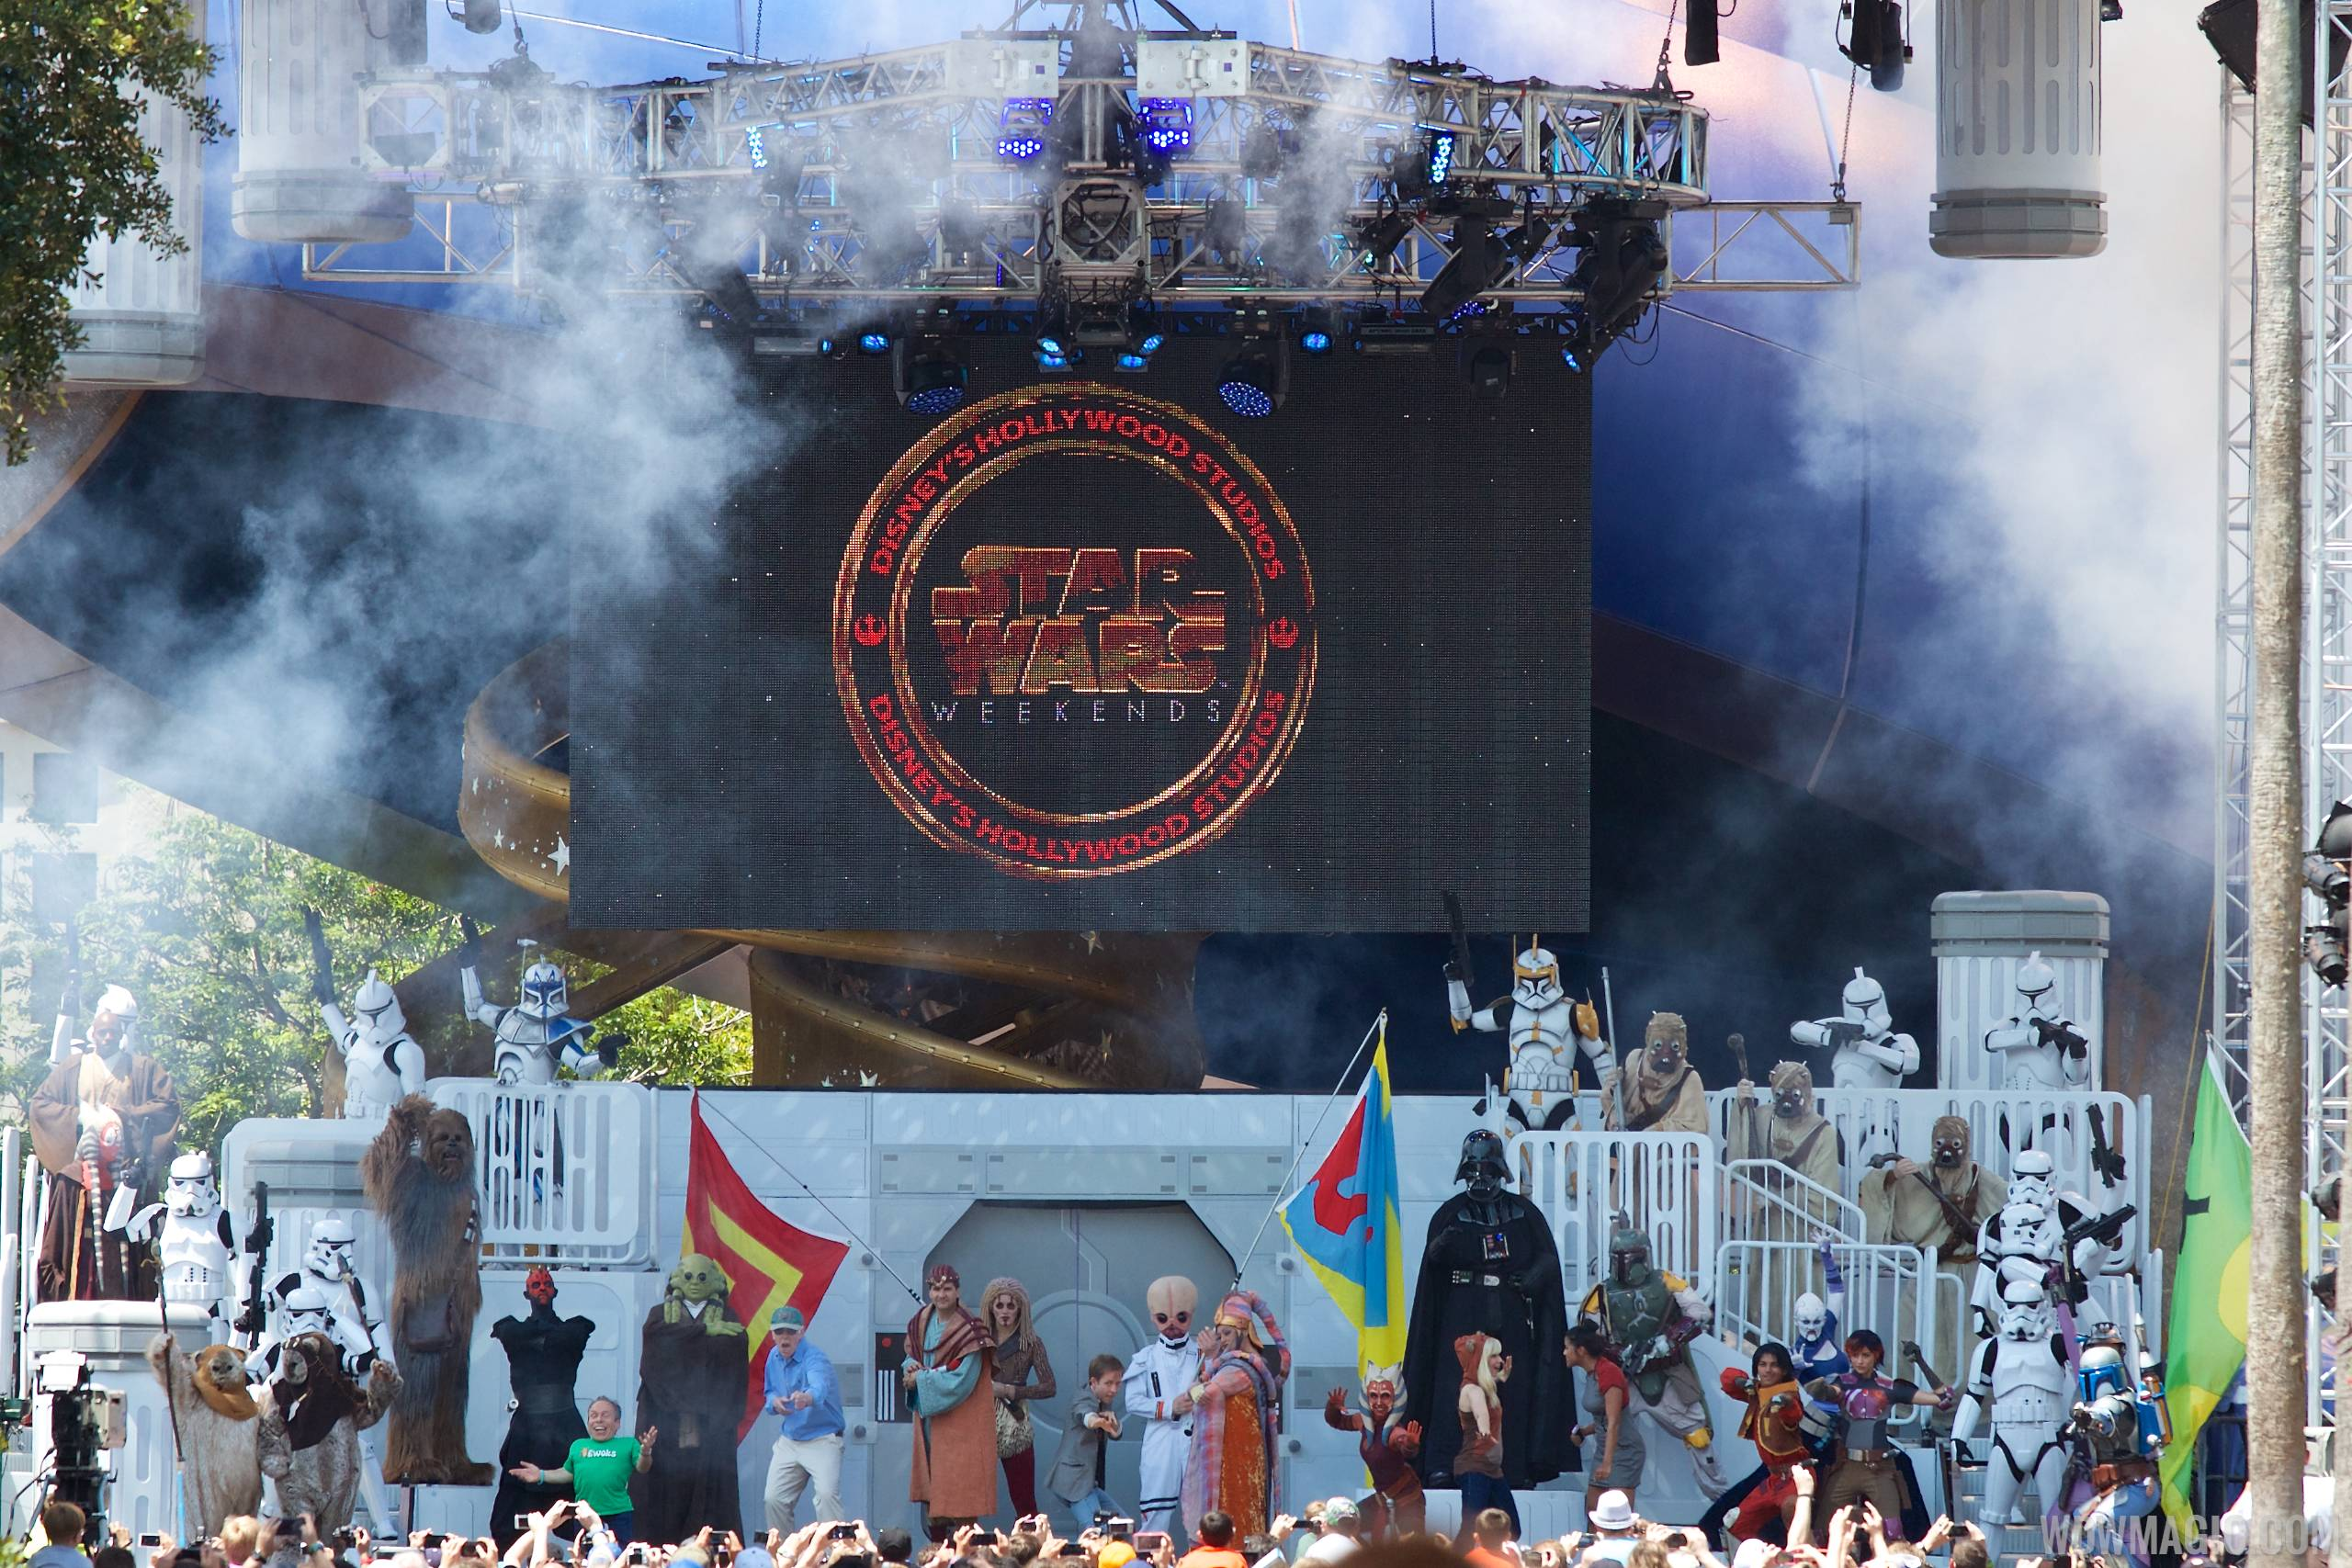 2014 Star Wars Weekends - Weekend 2 Legends of the Force motorcade - Celebrity Welcome